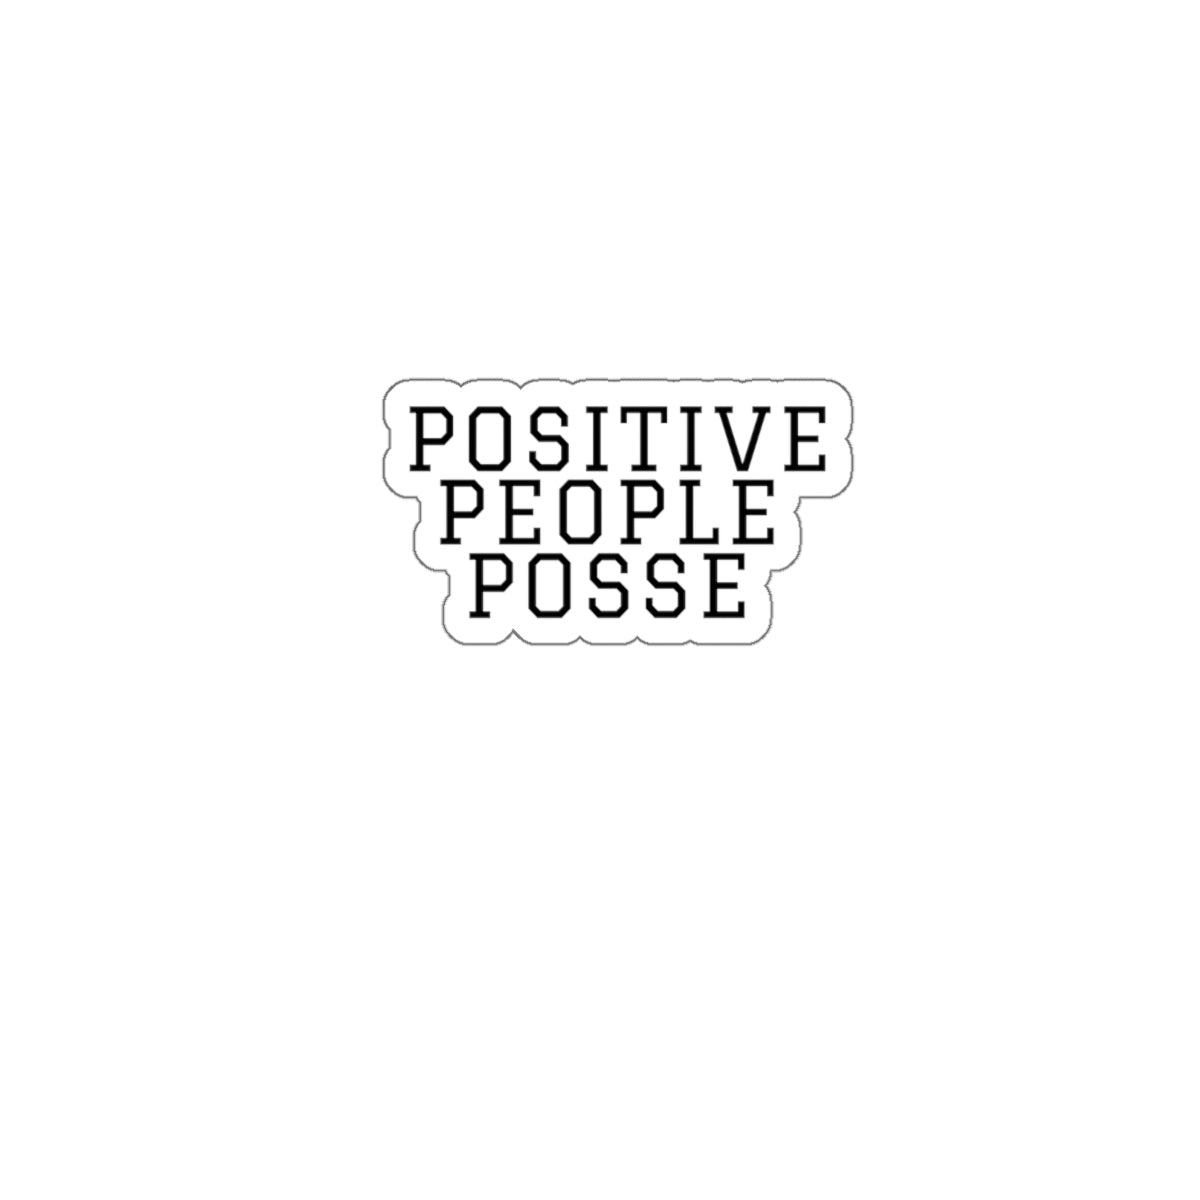 Kiss-Cut Stickers - +Positive People Posse+